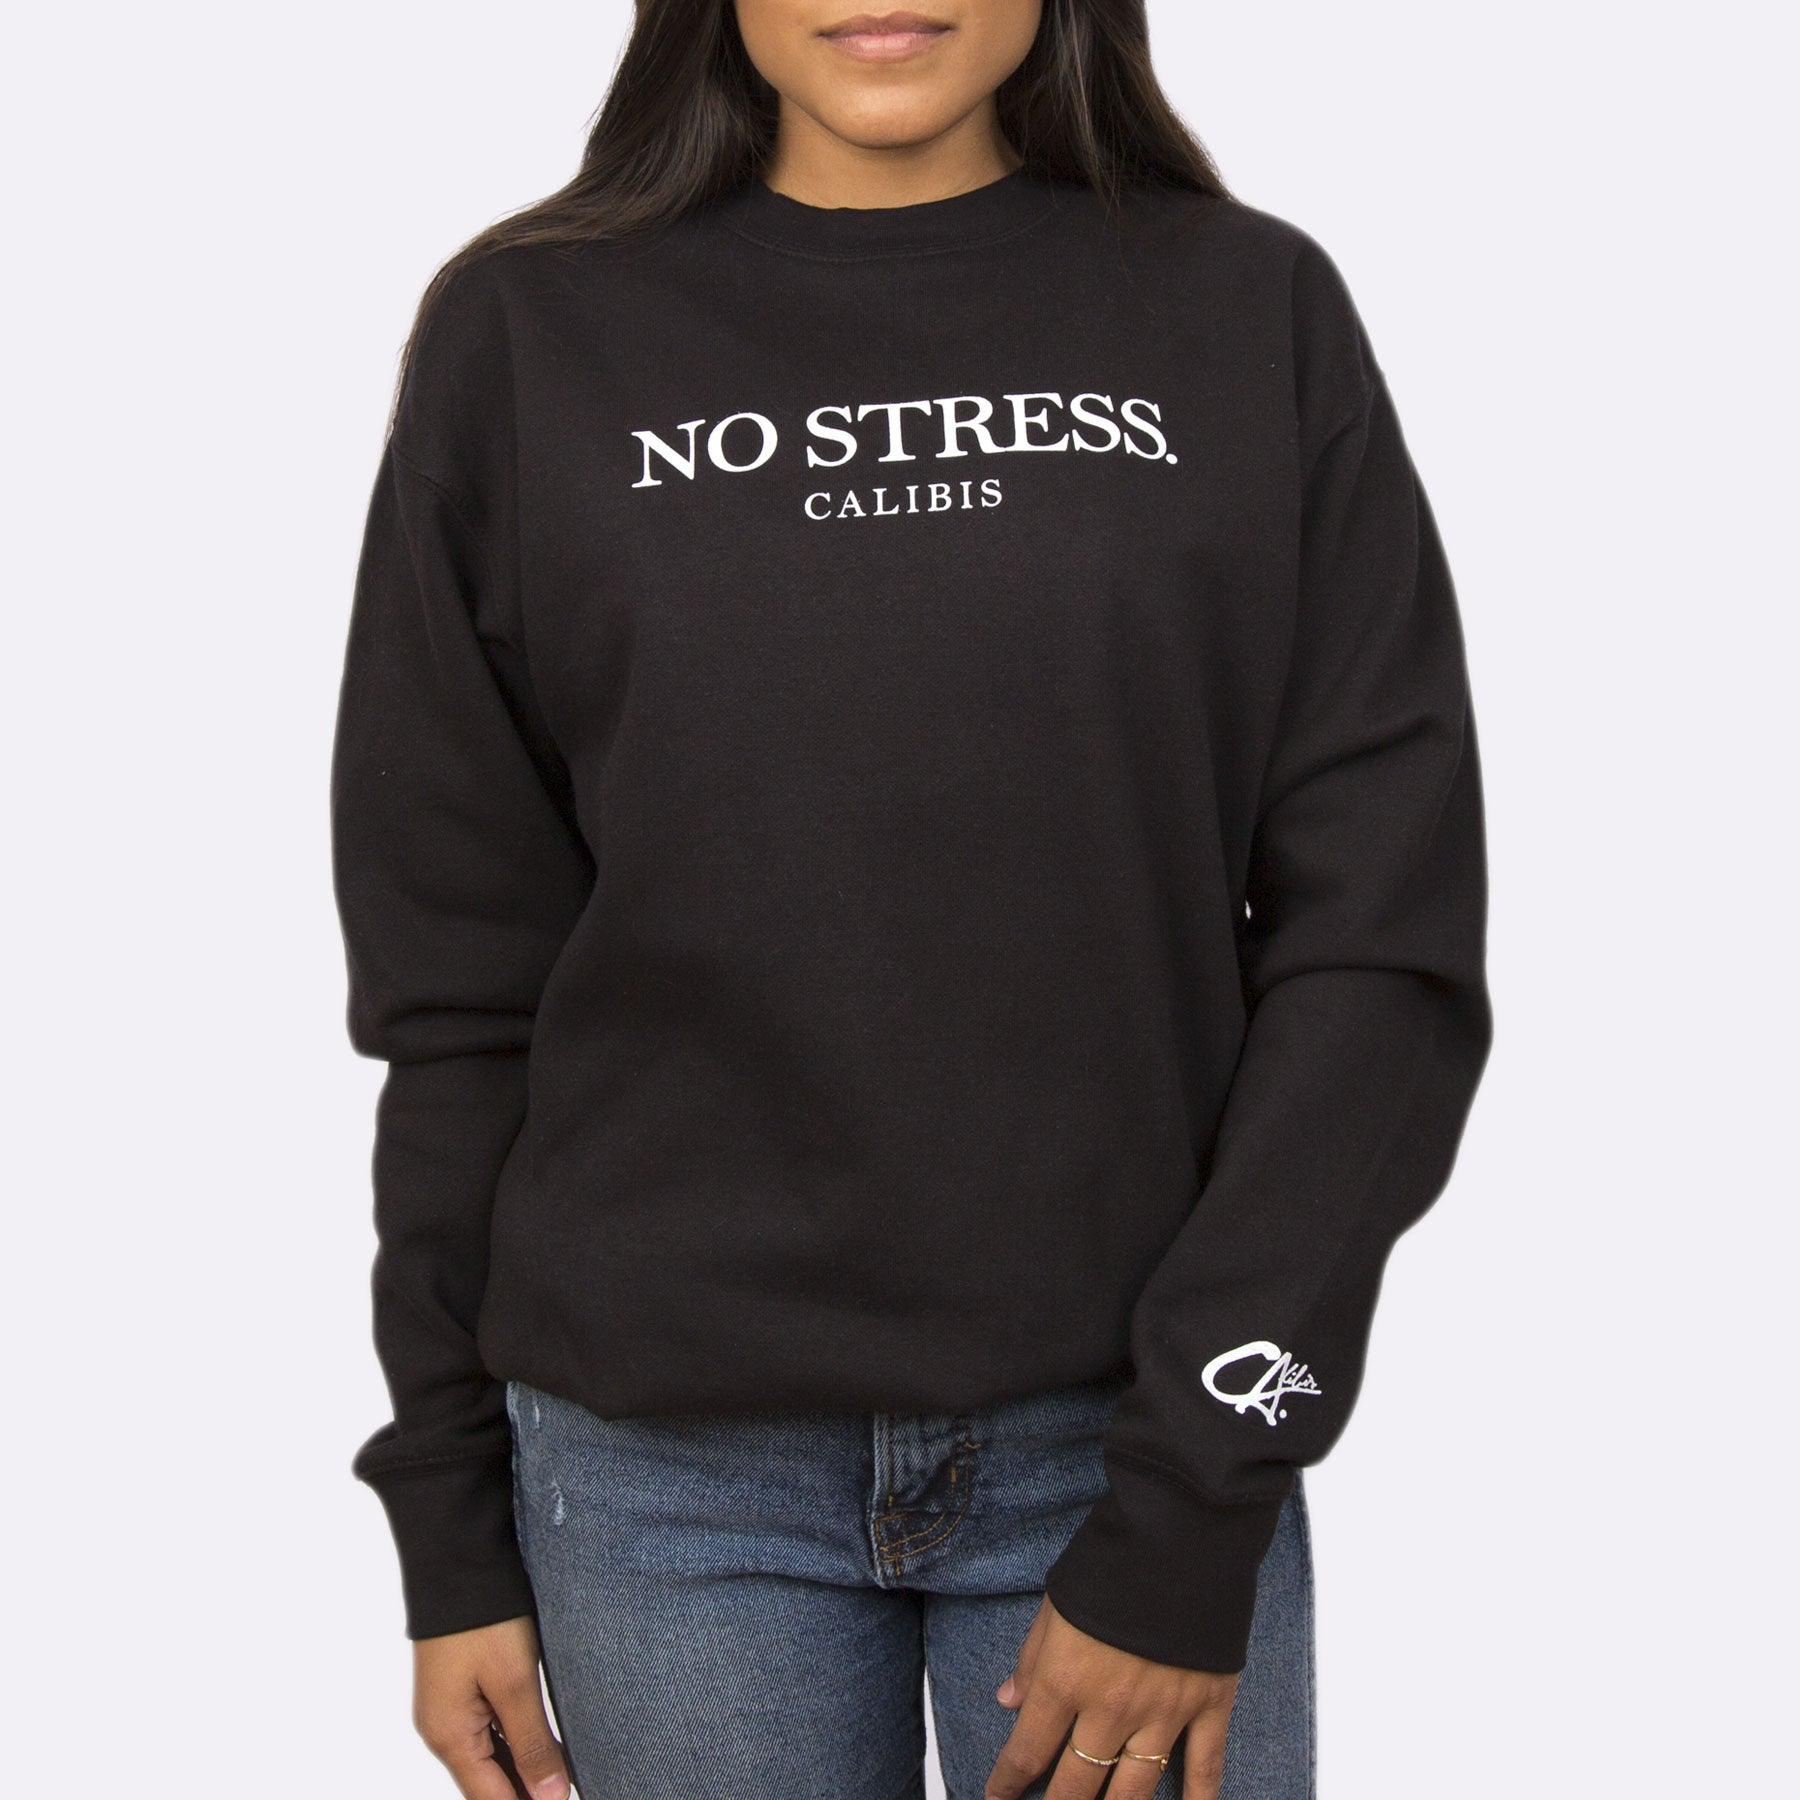 No Stress by Calibis Clothing